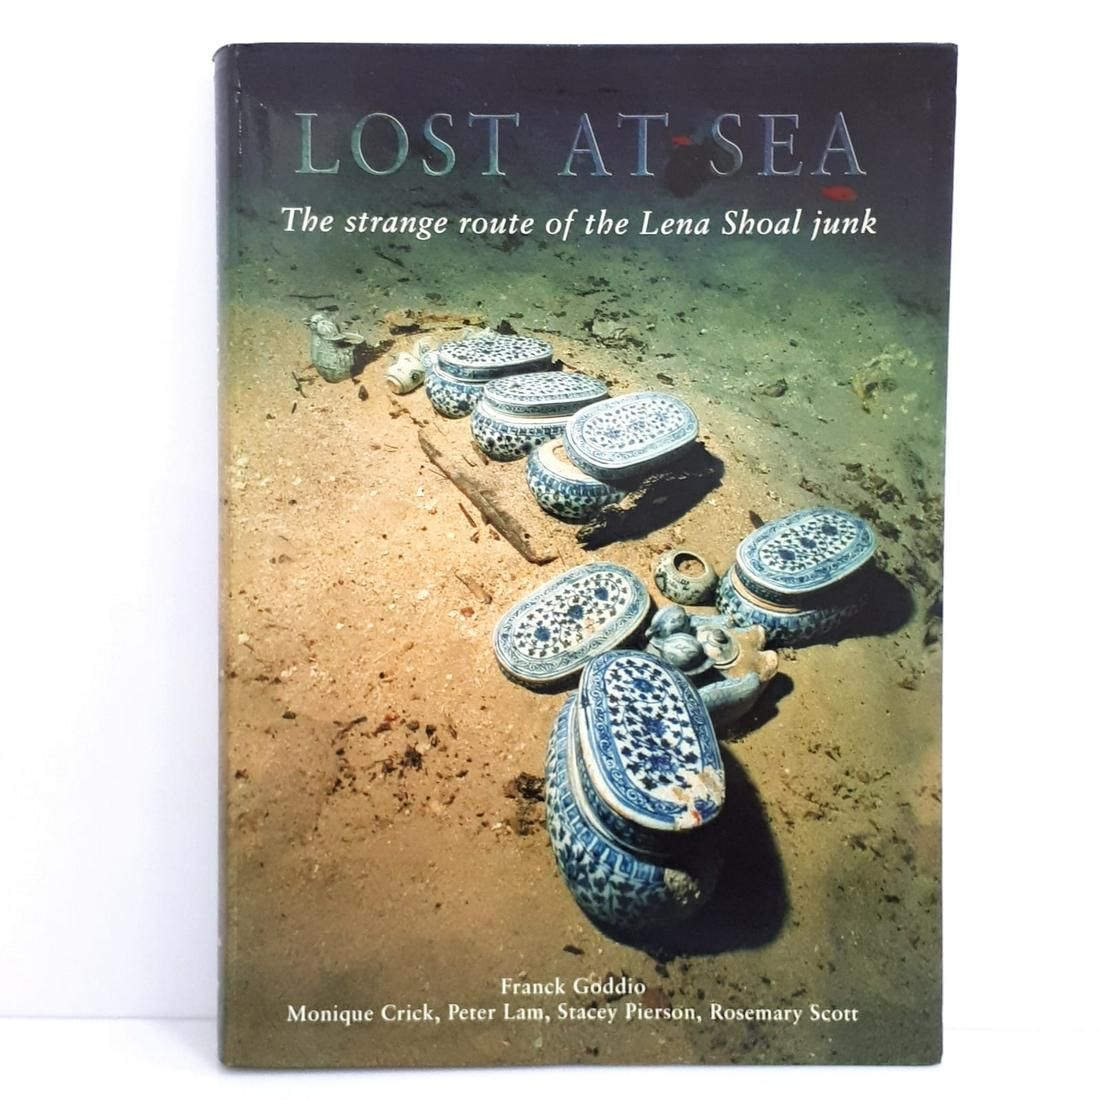 LOST AT SEA - THE STRANGE ROUTE OF THE LENA SHOAL JUNK